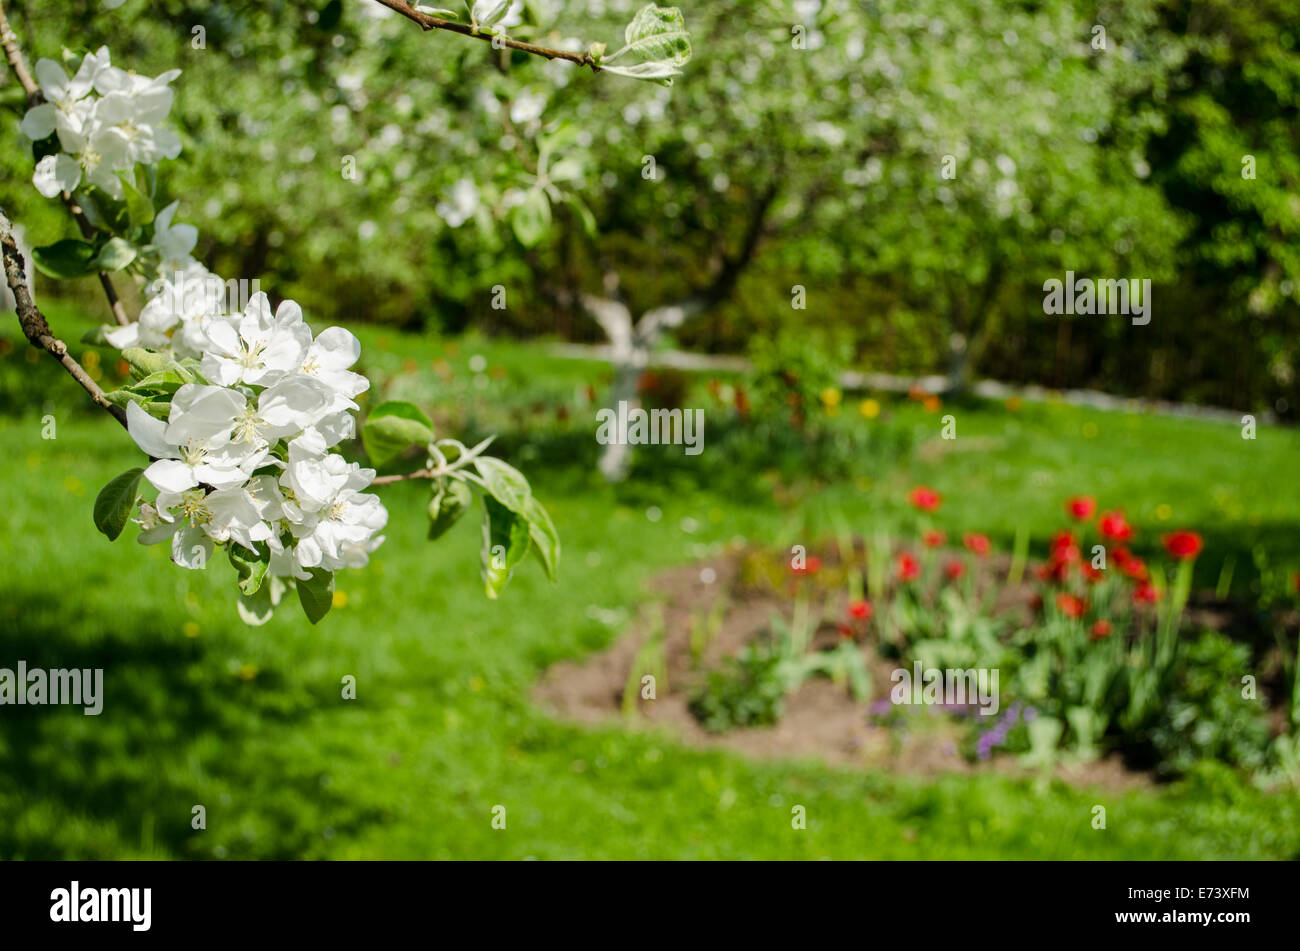 Apple Tree Branch With Small White Flowers And Leaves On Garden